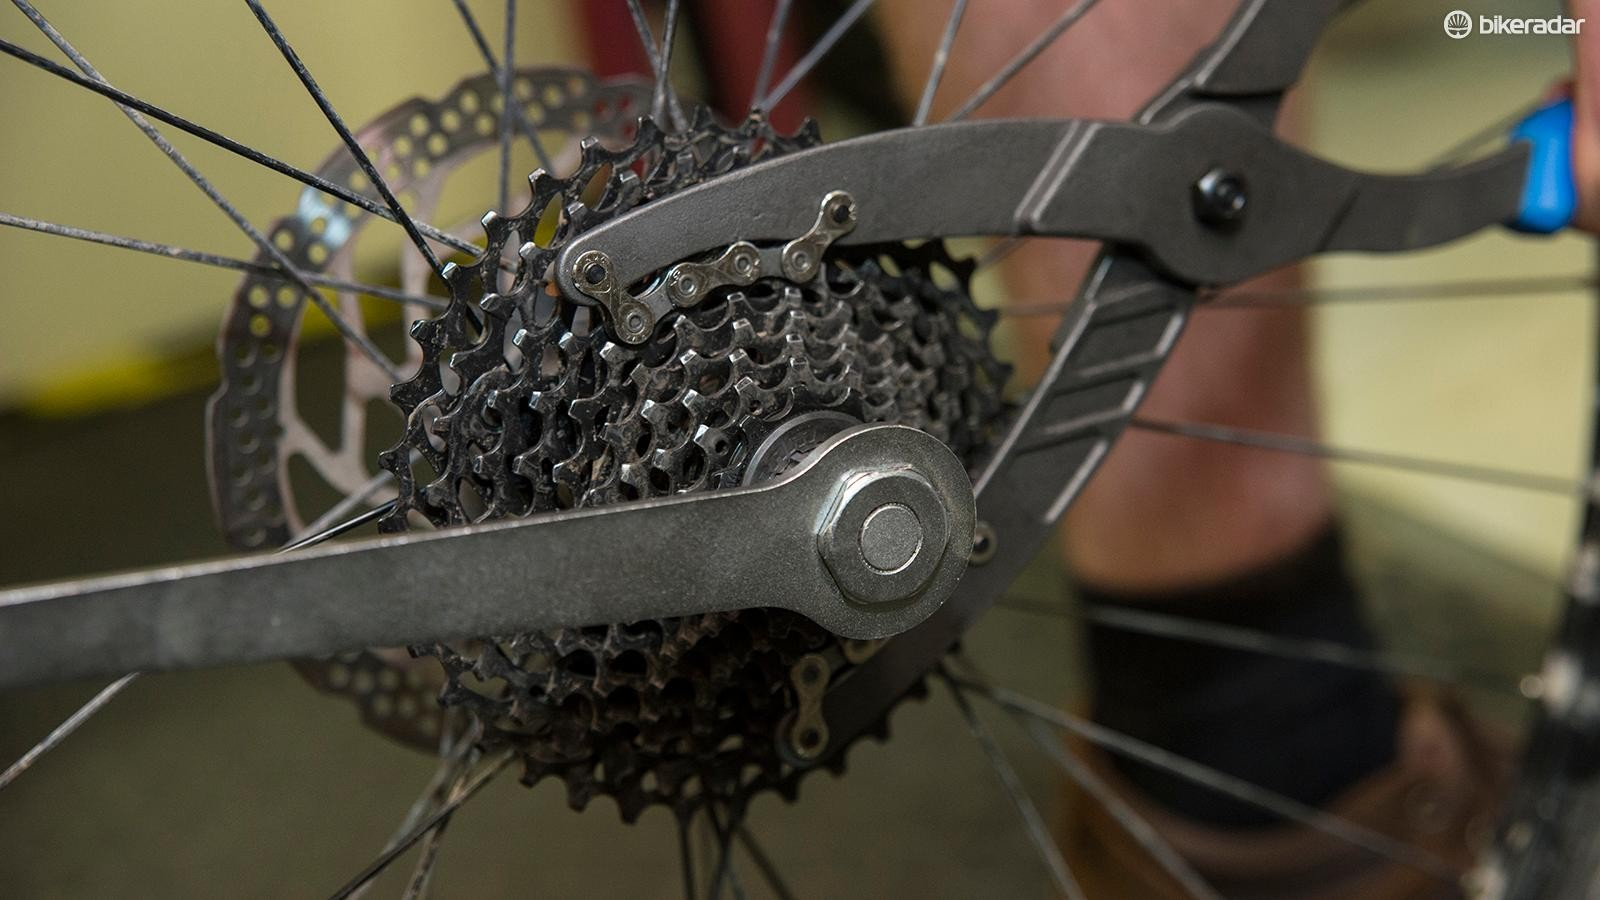 1. For a rear wheel spoke, first remove the cassette